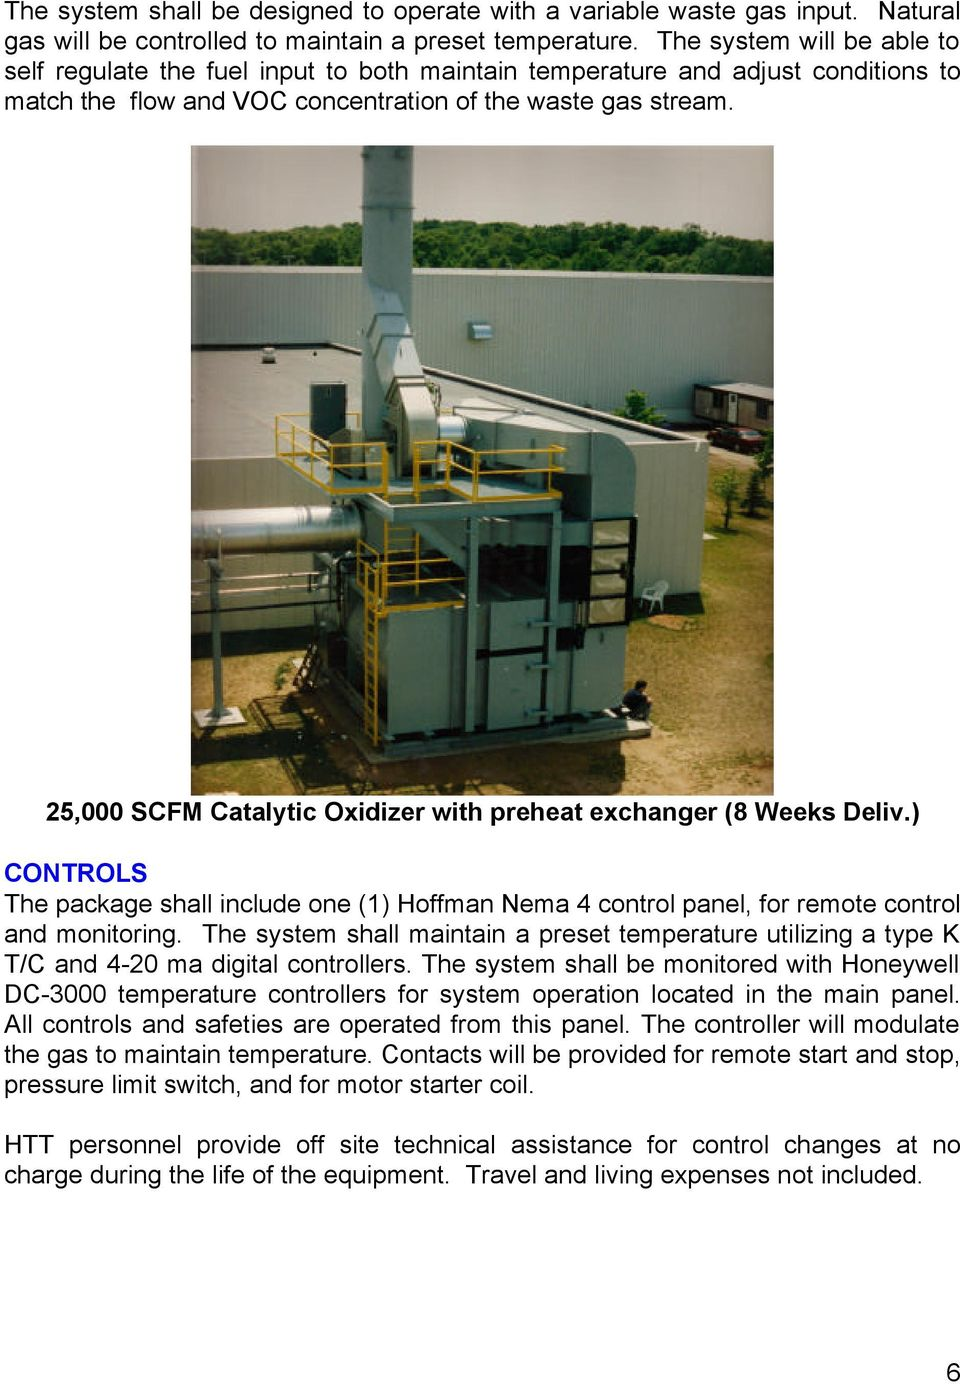 25,000 SCFM Catalytic Oxidizer with preheat exchanger (8 Weeks Deliv.) CONTROLS The package shall include one (1) Hoffman Nema 4 control panel, for remote control and monitoring.